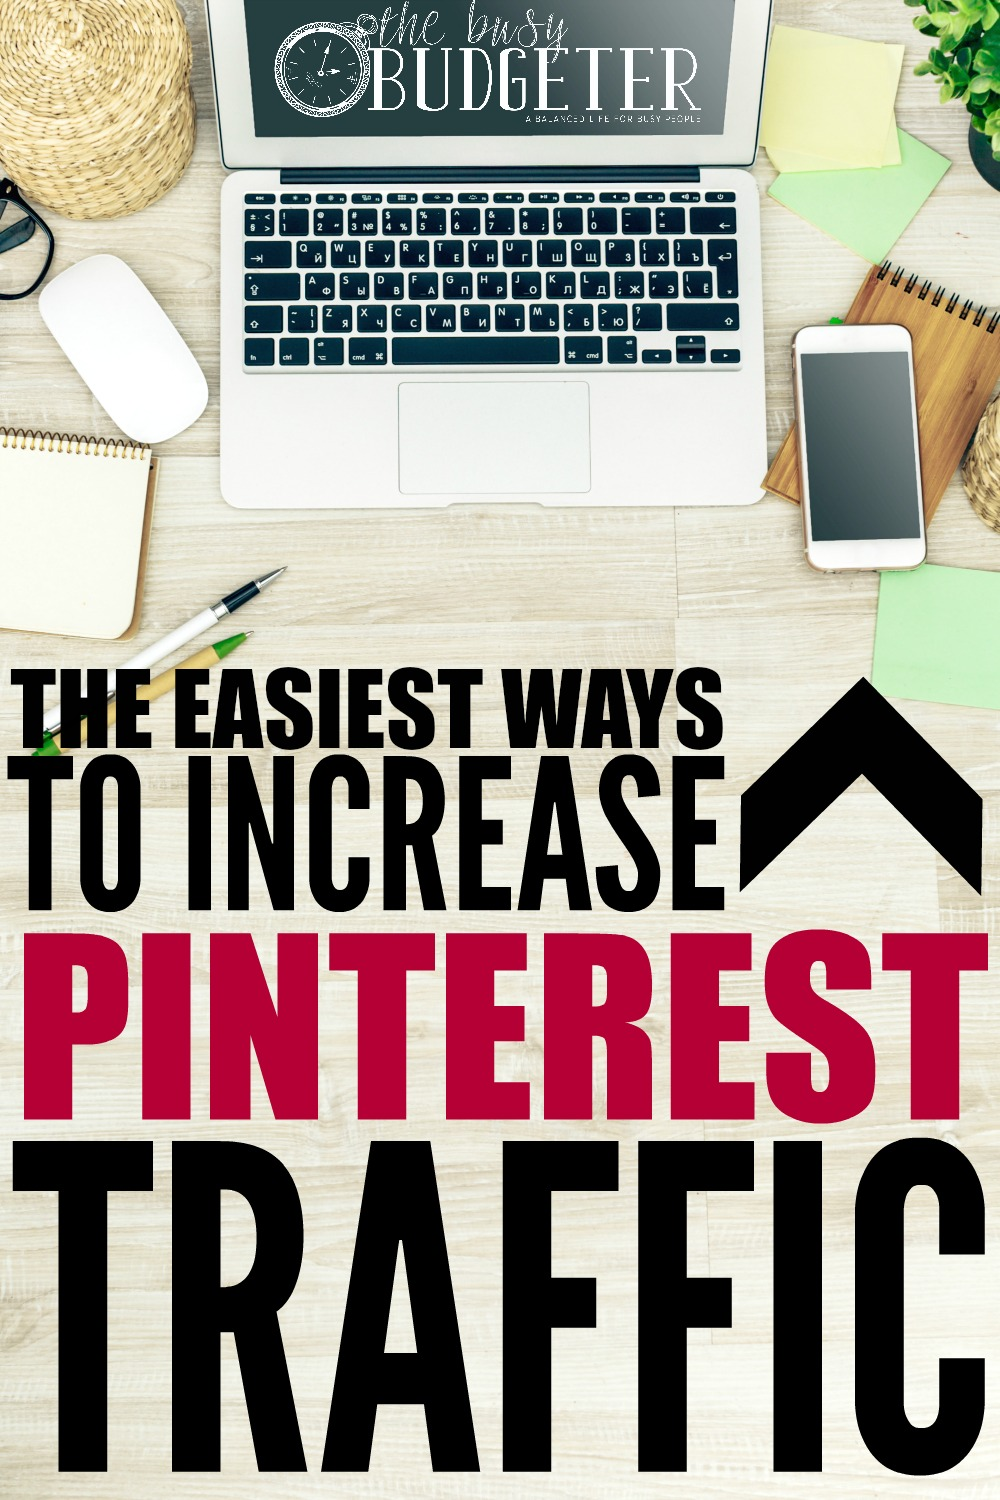 The easiest ways to increase Pinterest Traffic. I implemented all three of these and saw a HUGE increase in Pinterest traffic. I love Pinterest for Blogging! I wish other social media was as easy as Pinterest is.